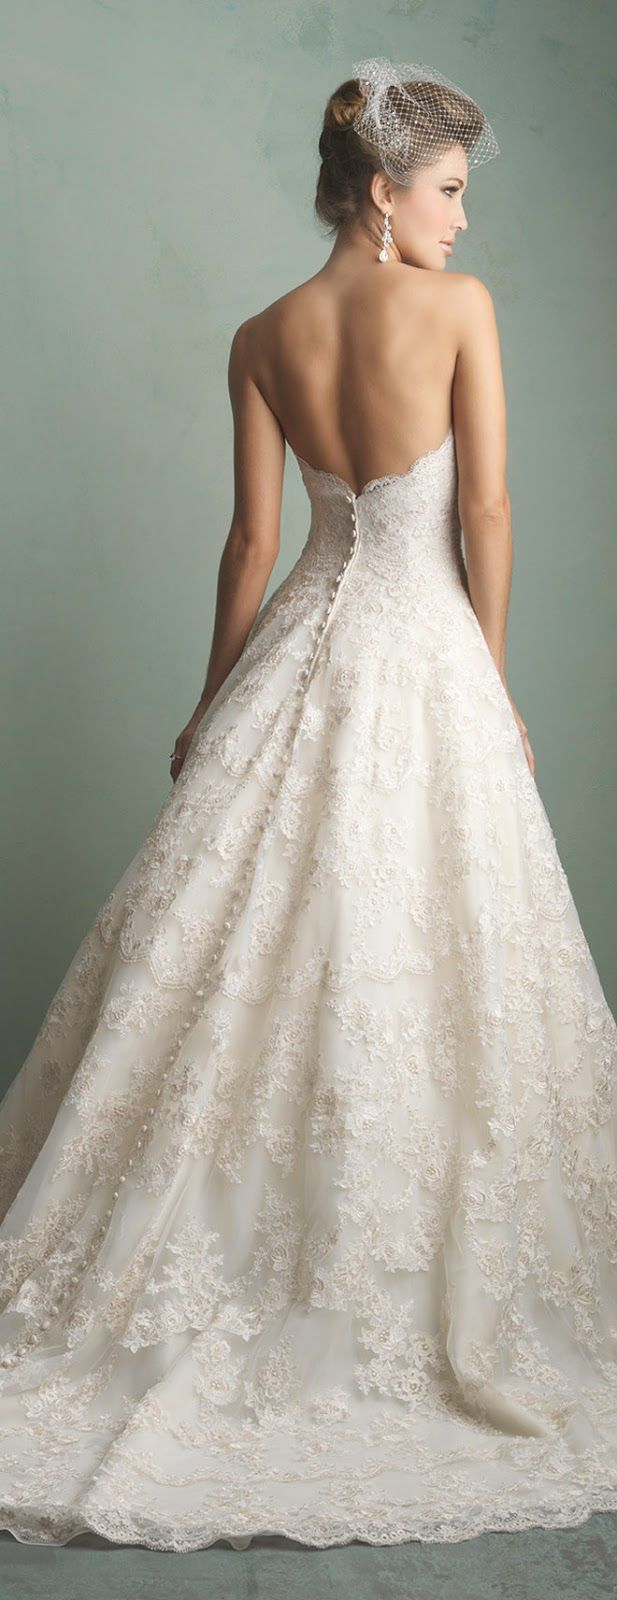 Brides Gowns Handfastings Weddings: Bridal gown. Allure Bridals Fall 2014 - Belle